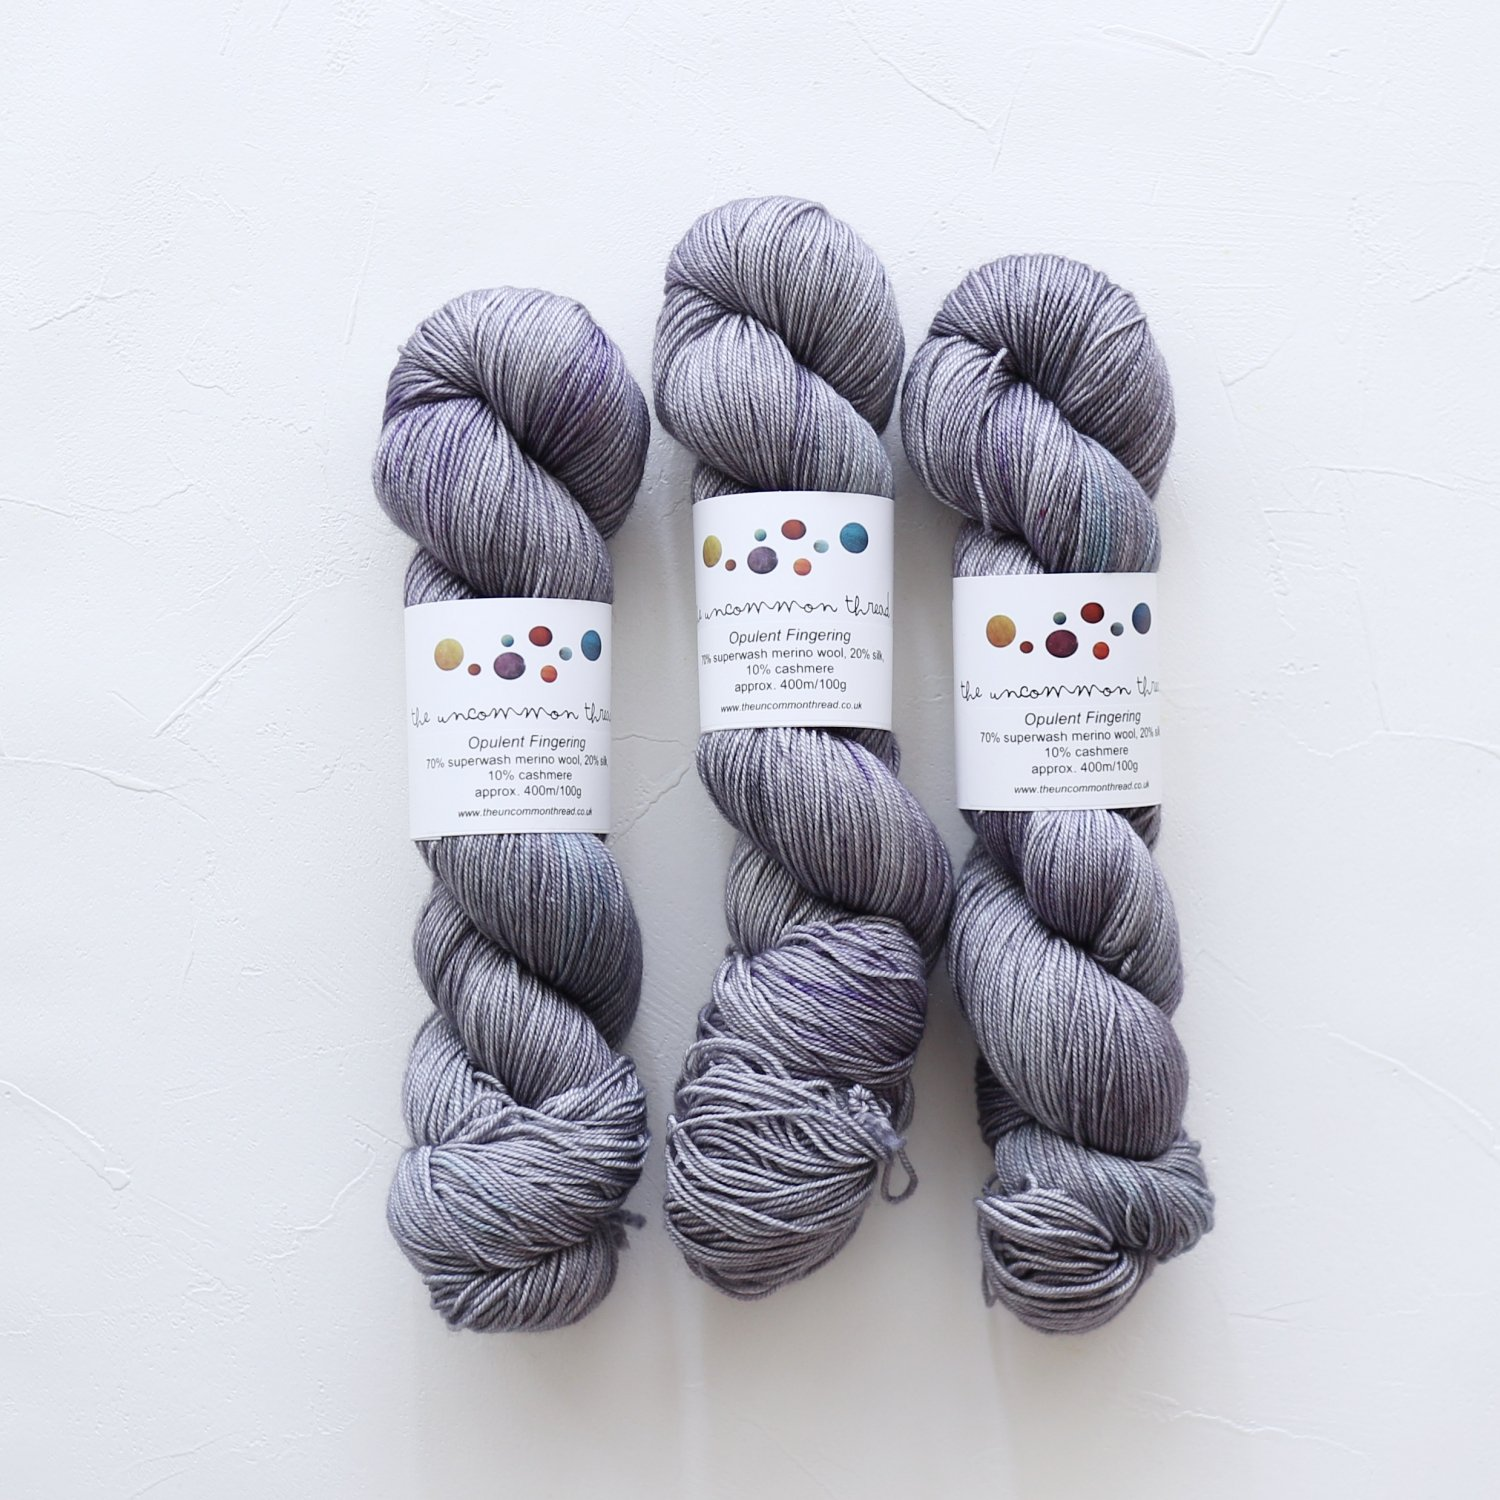 【The Uncommon Thread】<br>Opulent Fingering<br>London Mist